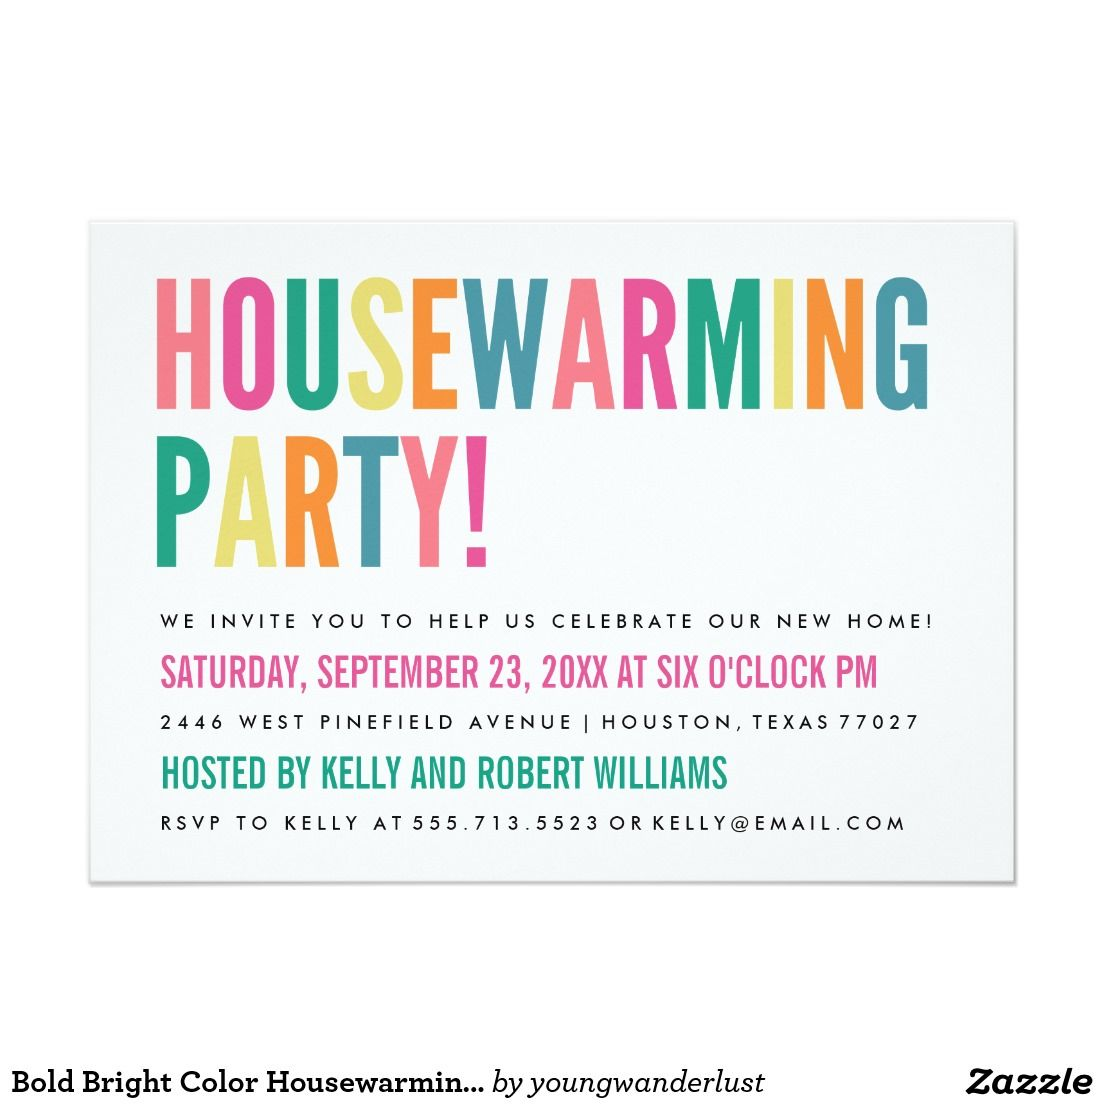 Bold Bright Color Housewarming Party Invitation | Housewarming party ...